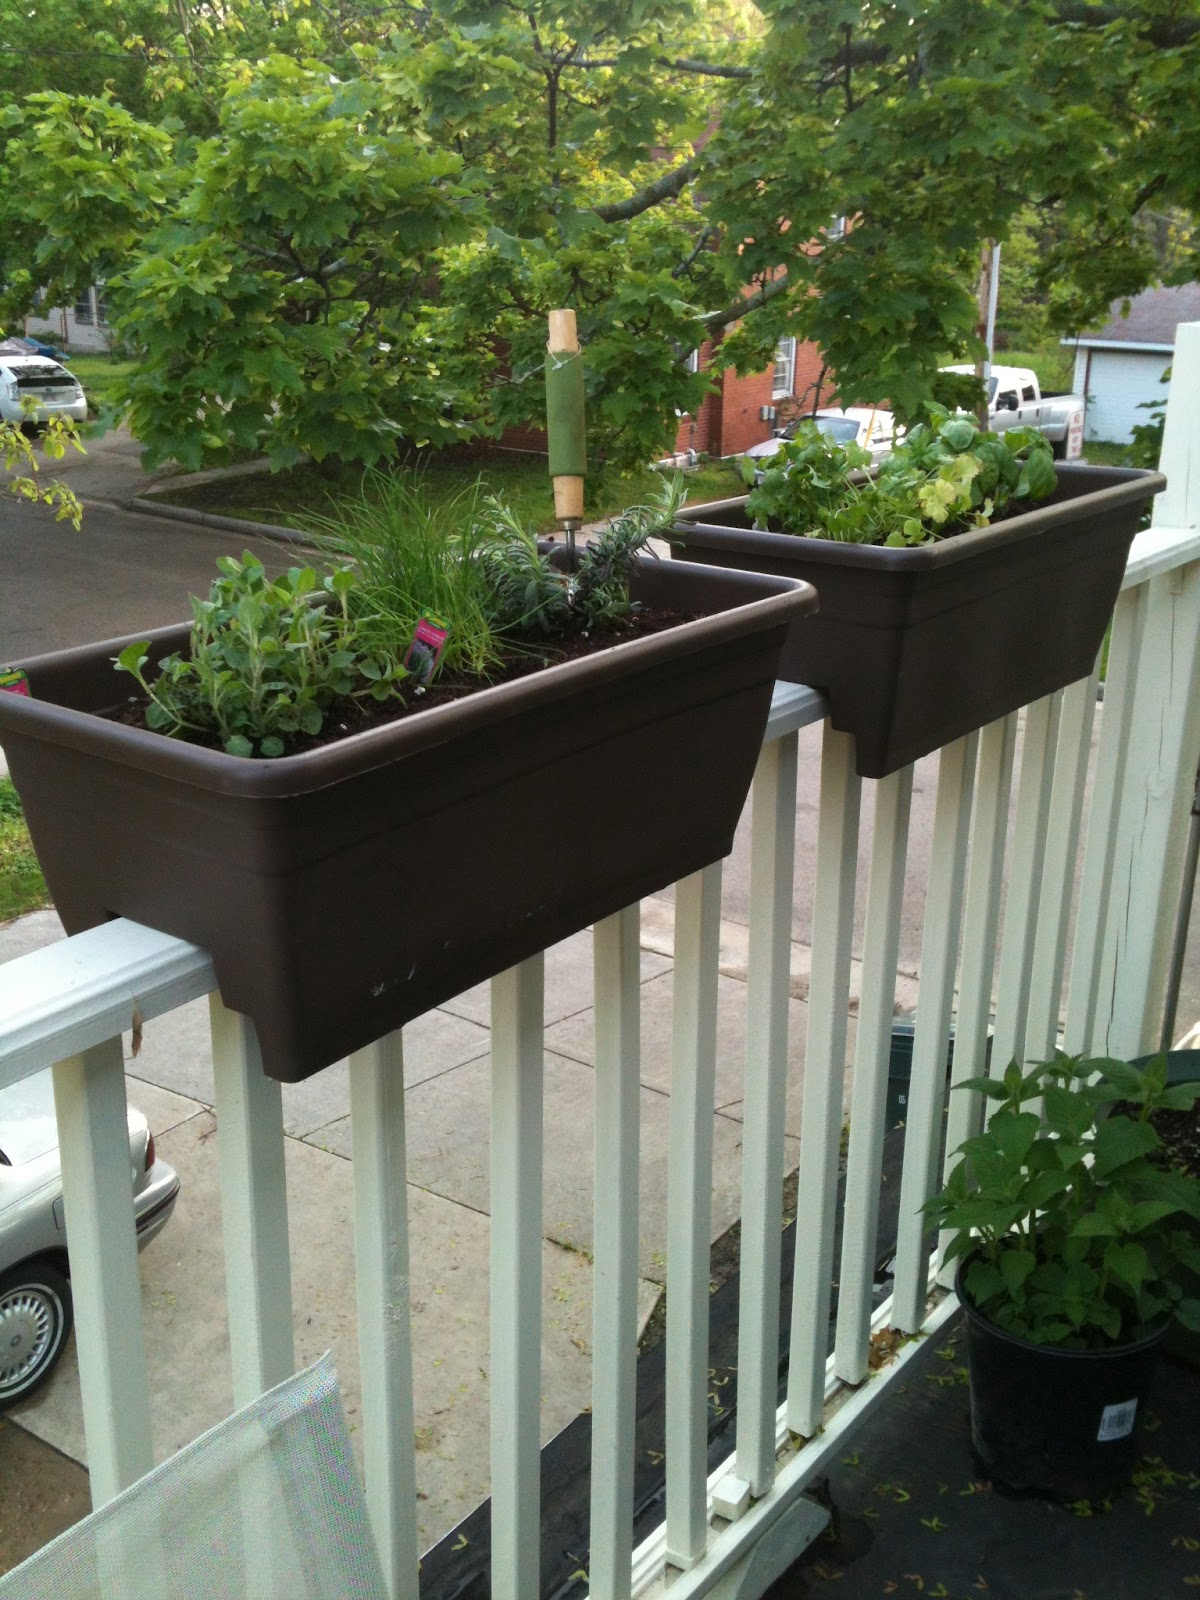 Herb garden deck railing deck design and ideas herb garden deck railing baanklon Image collections